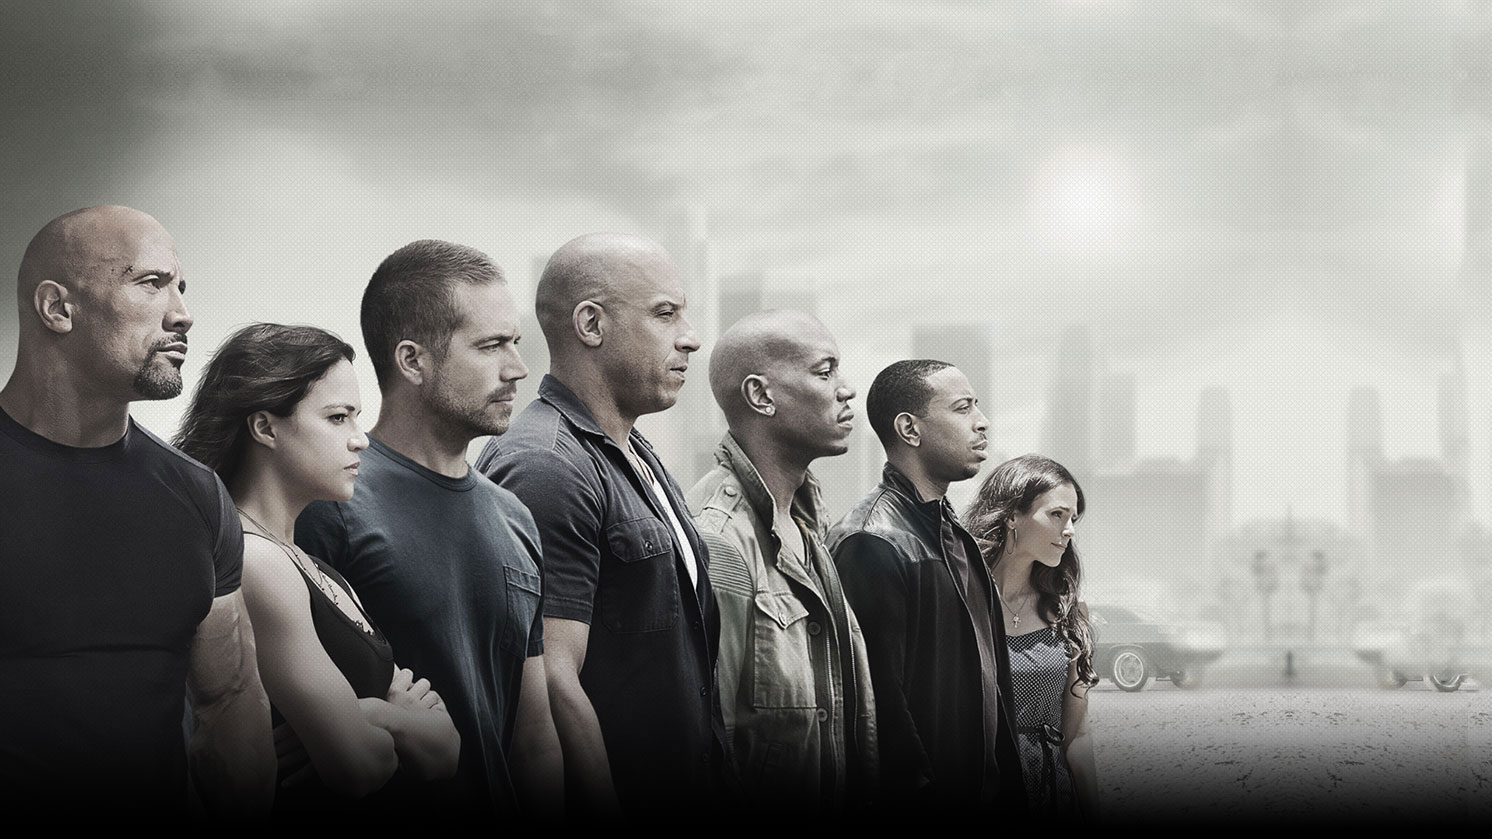 Wann Kommt Fast And Furious 8 Ins Kino